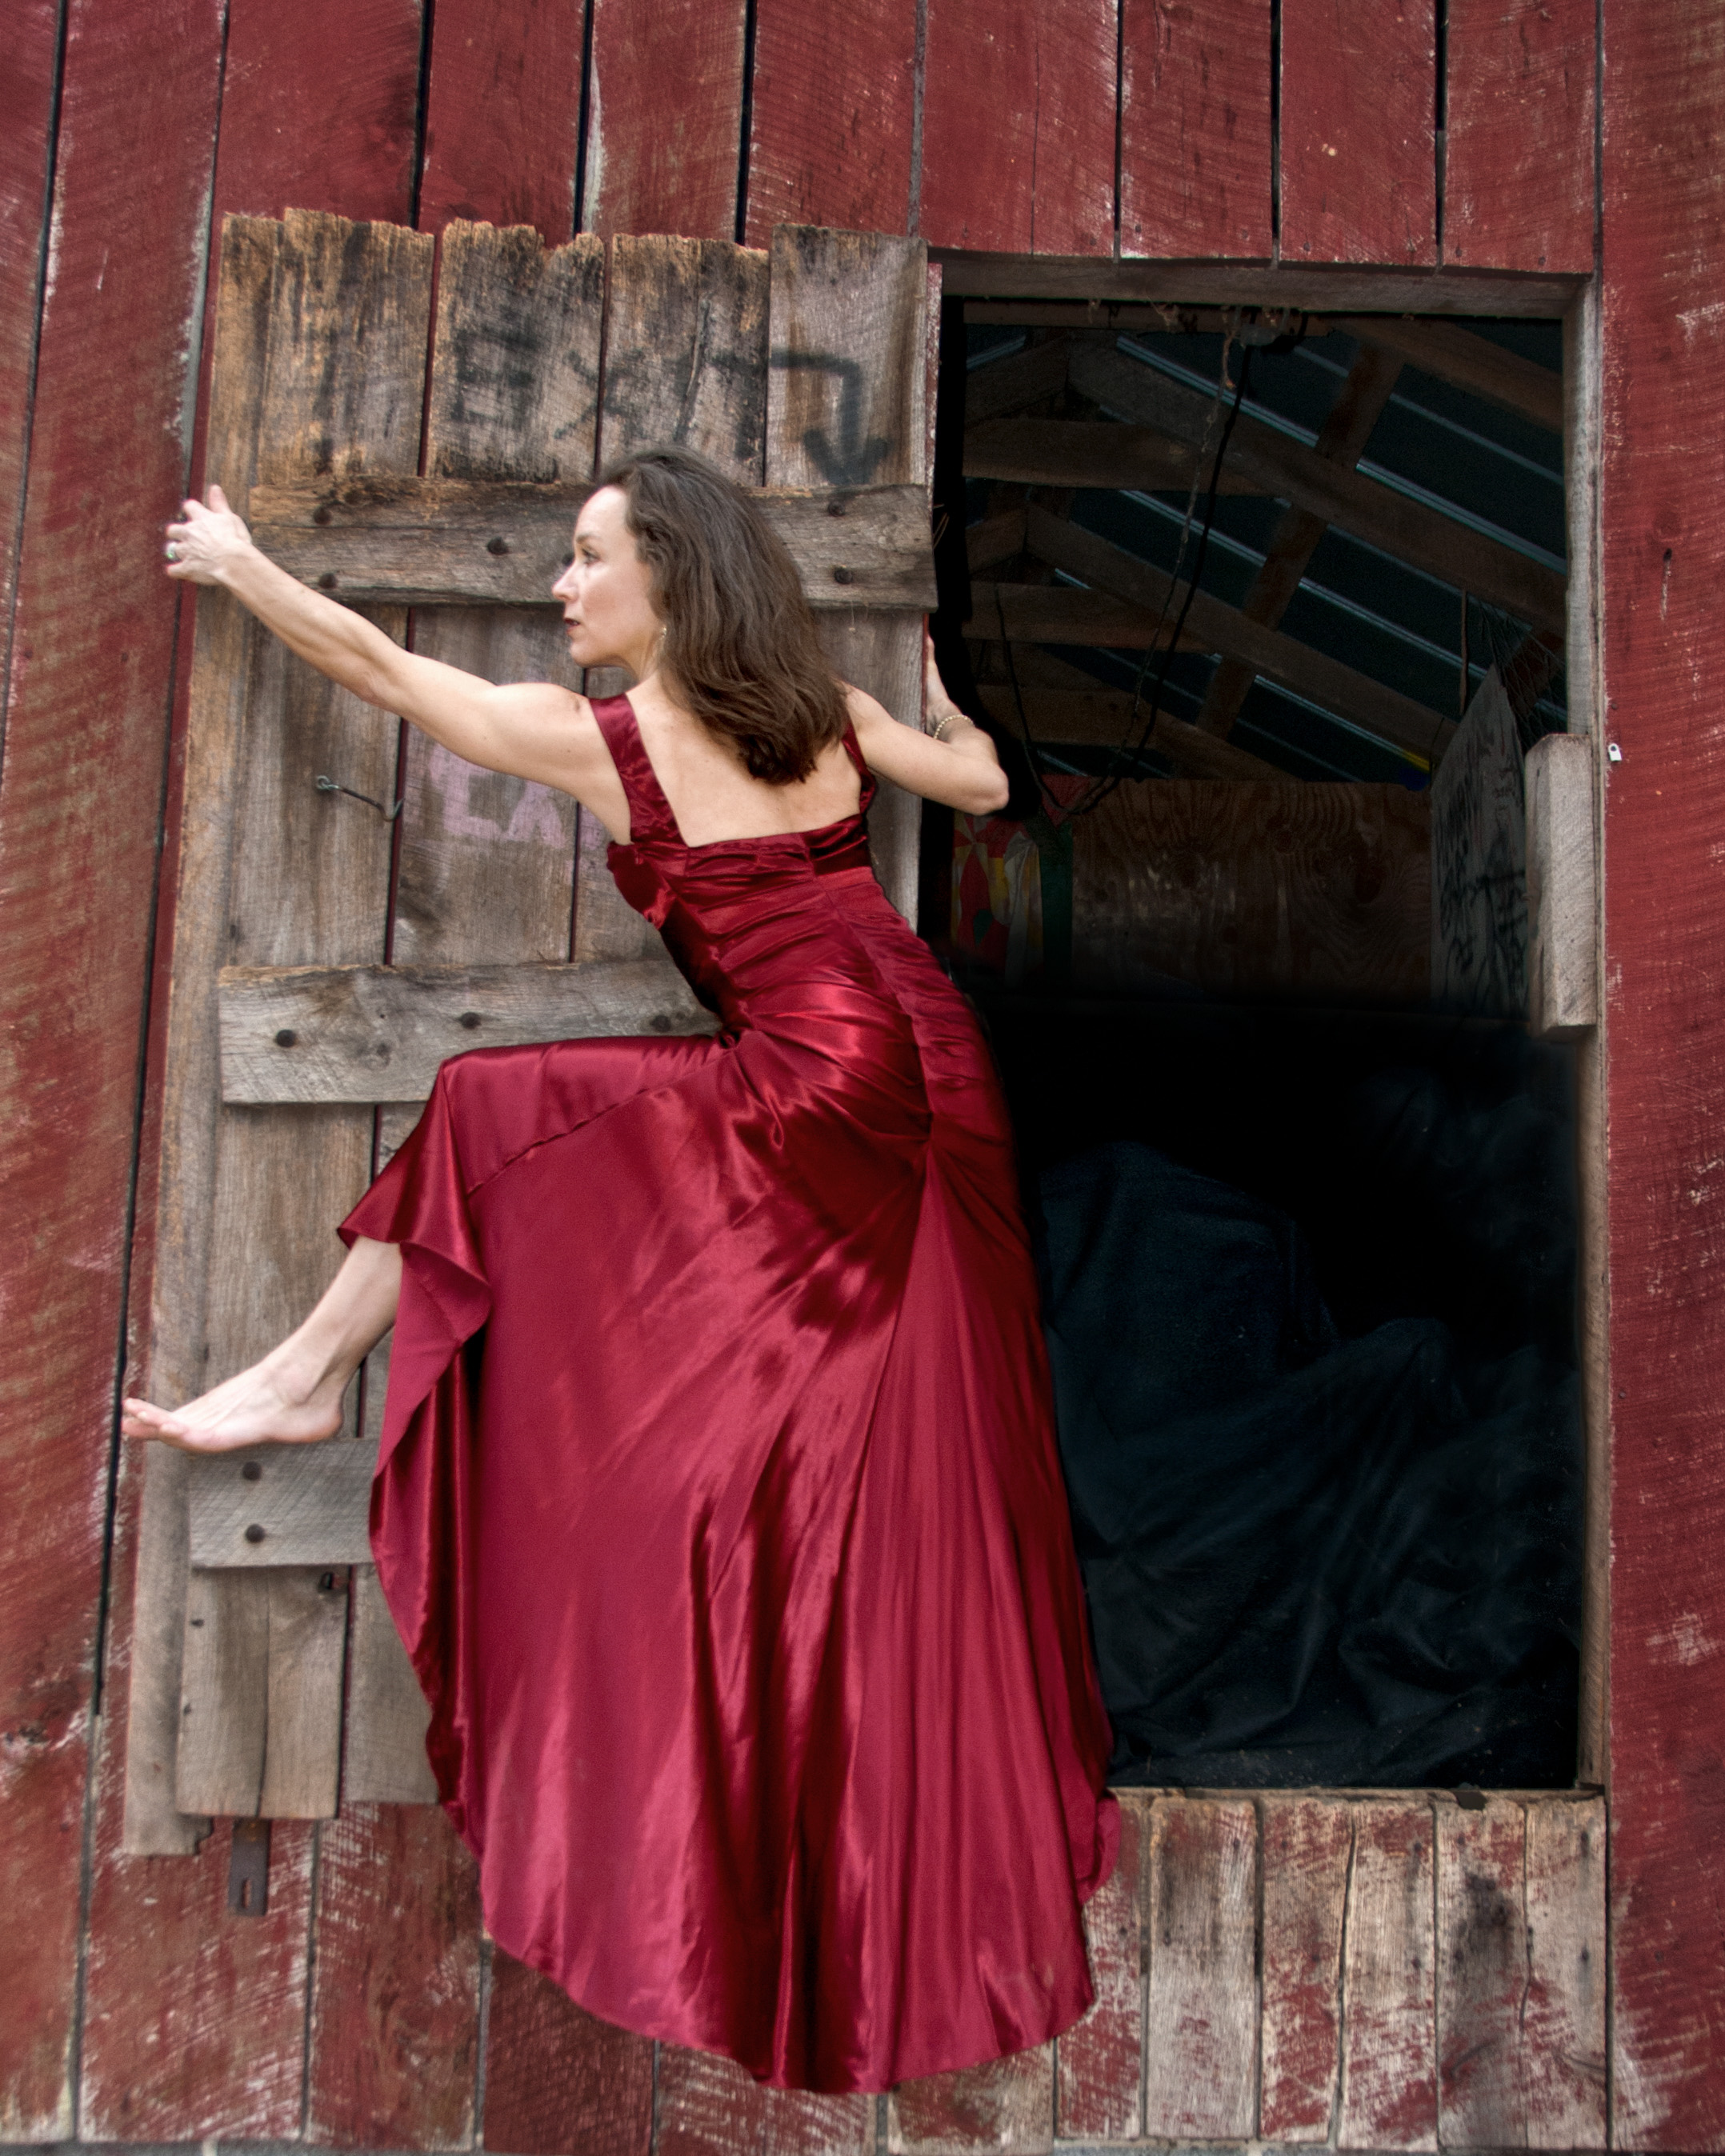 Strong woman in red gown exits barn hanging on rustic door.